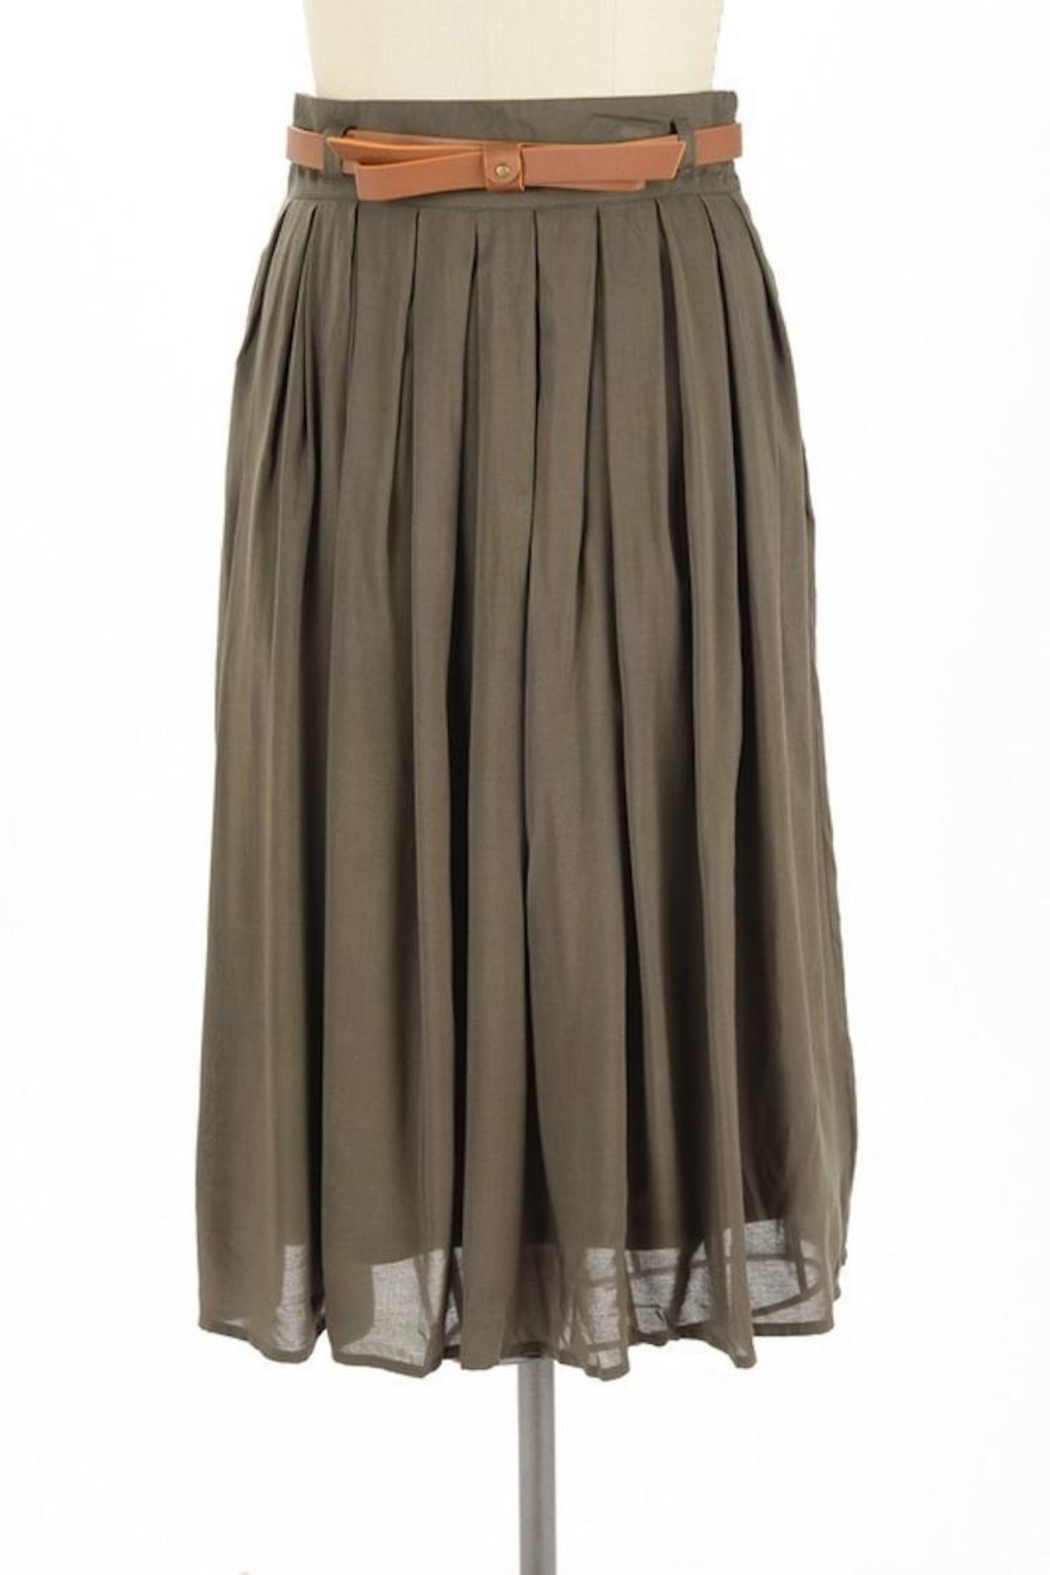 Comme Toi Favorite Olive Skirt - Main Image